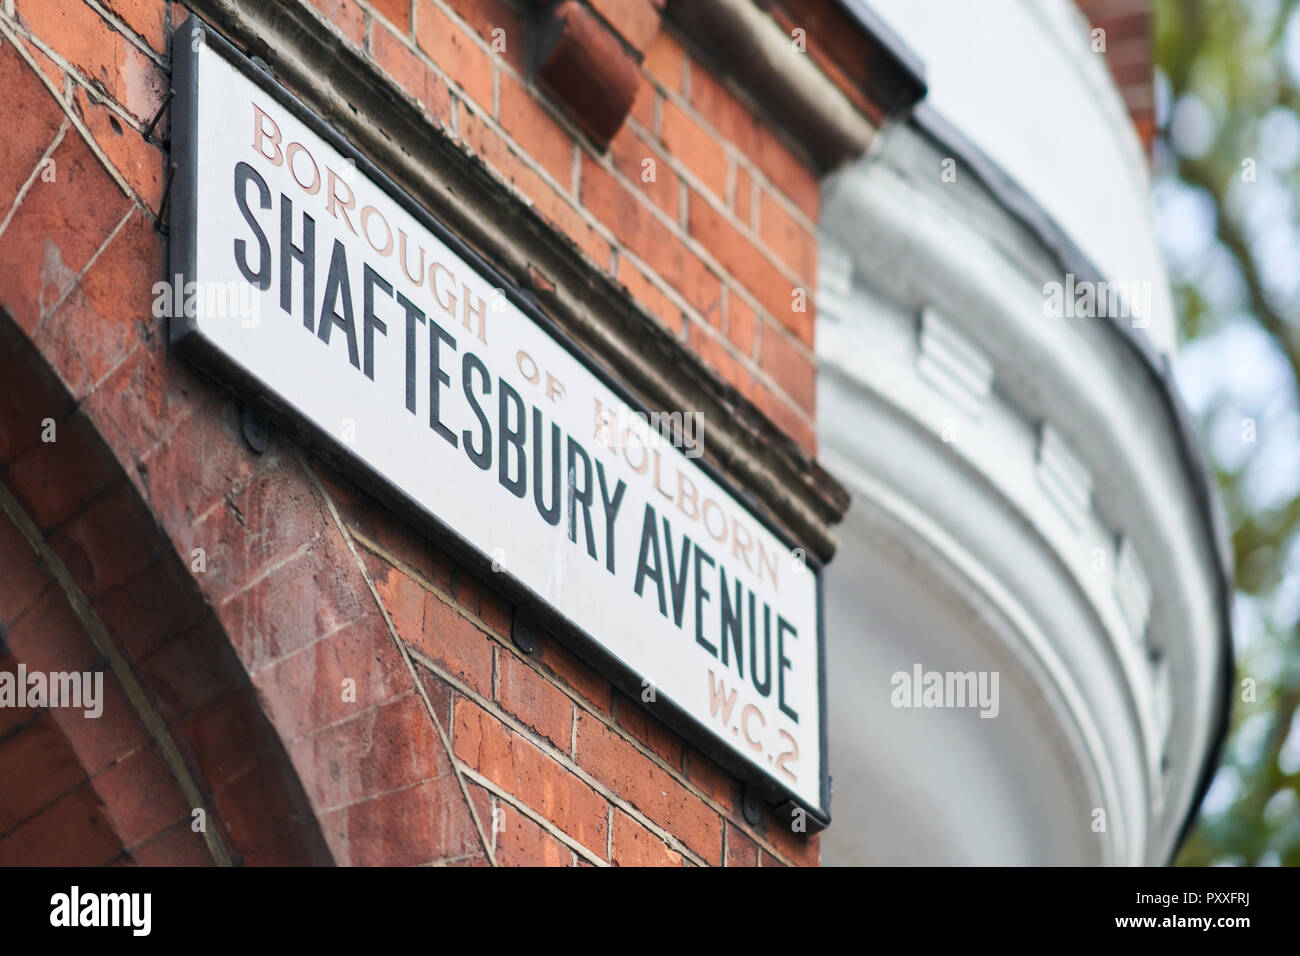 Shaftesbury Avenue Sign - Stock Image